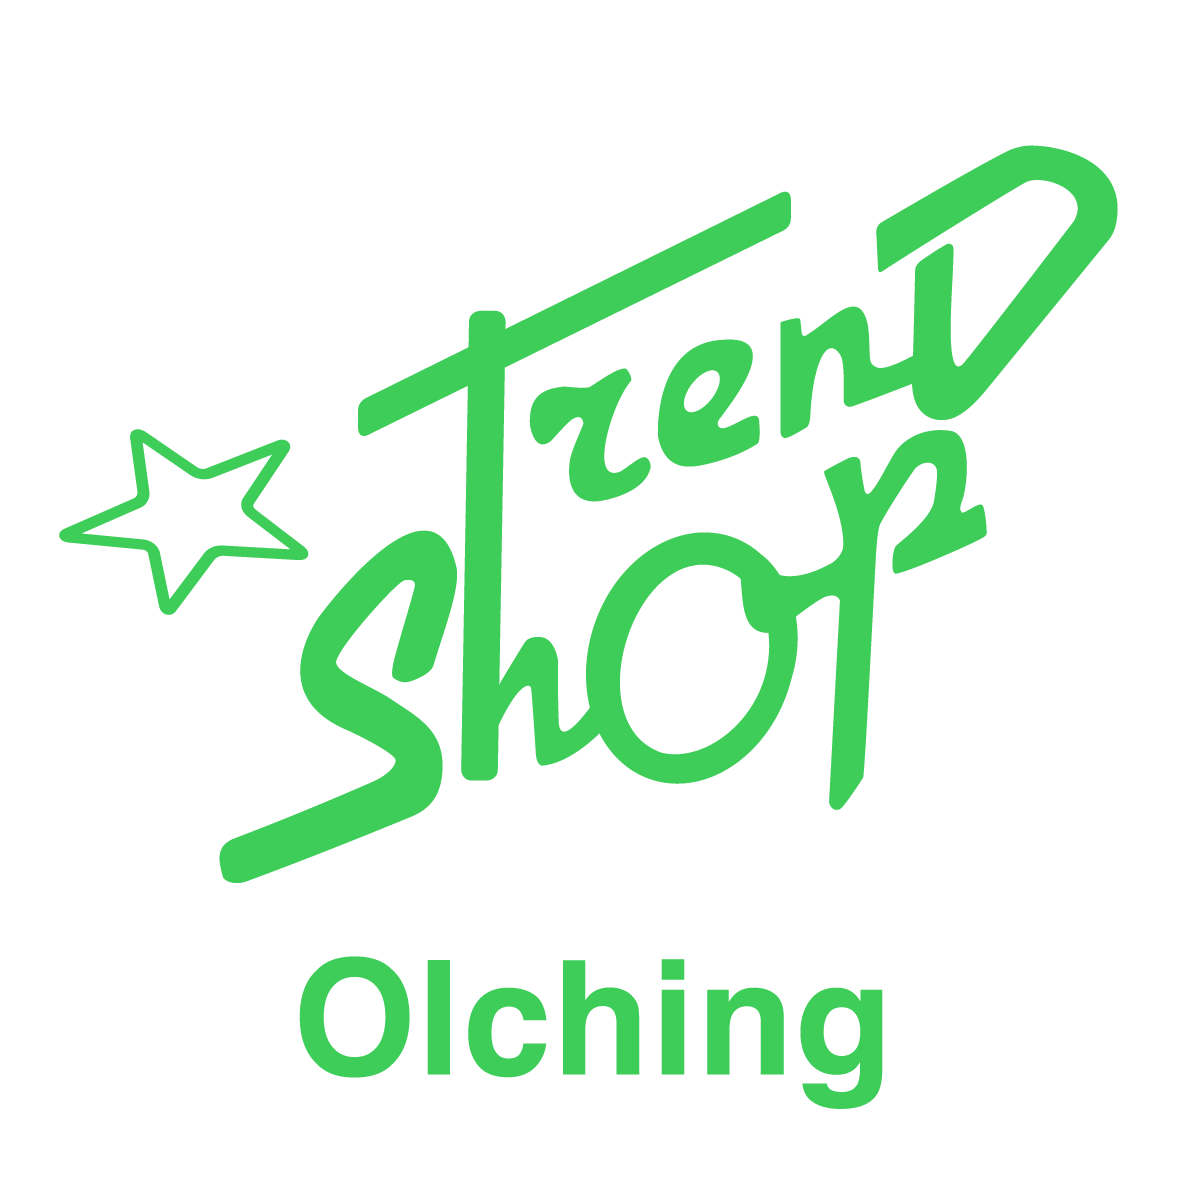 Trend Shop Olching